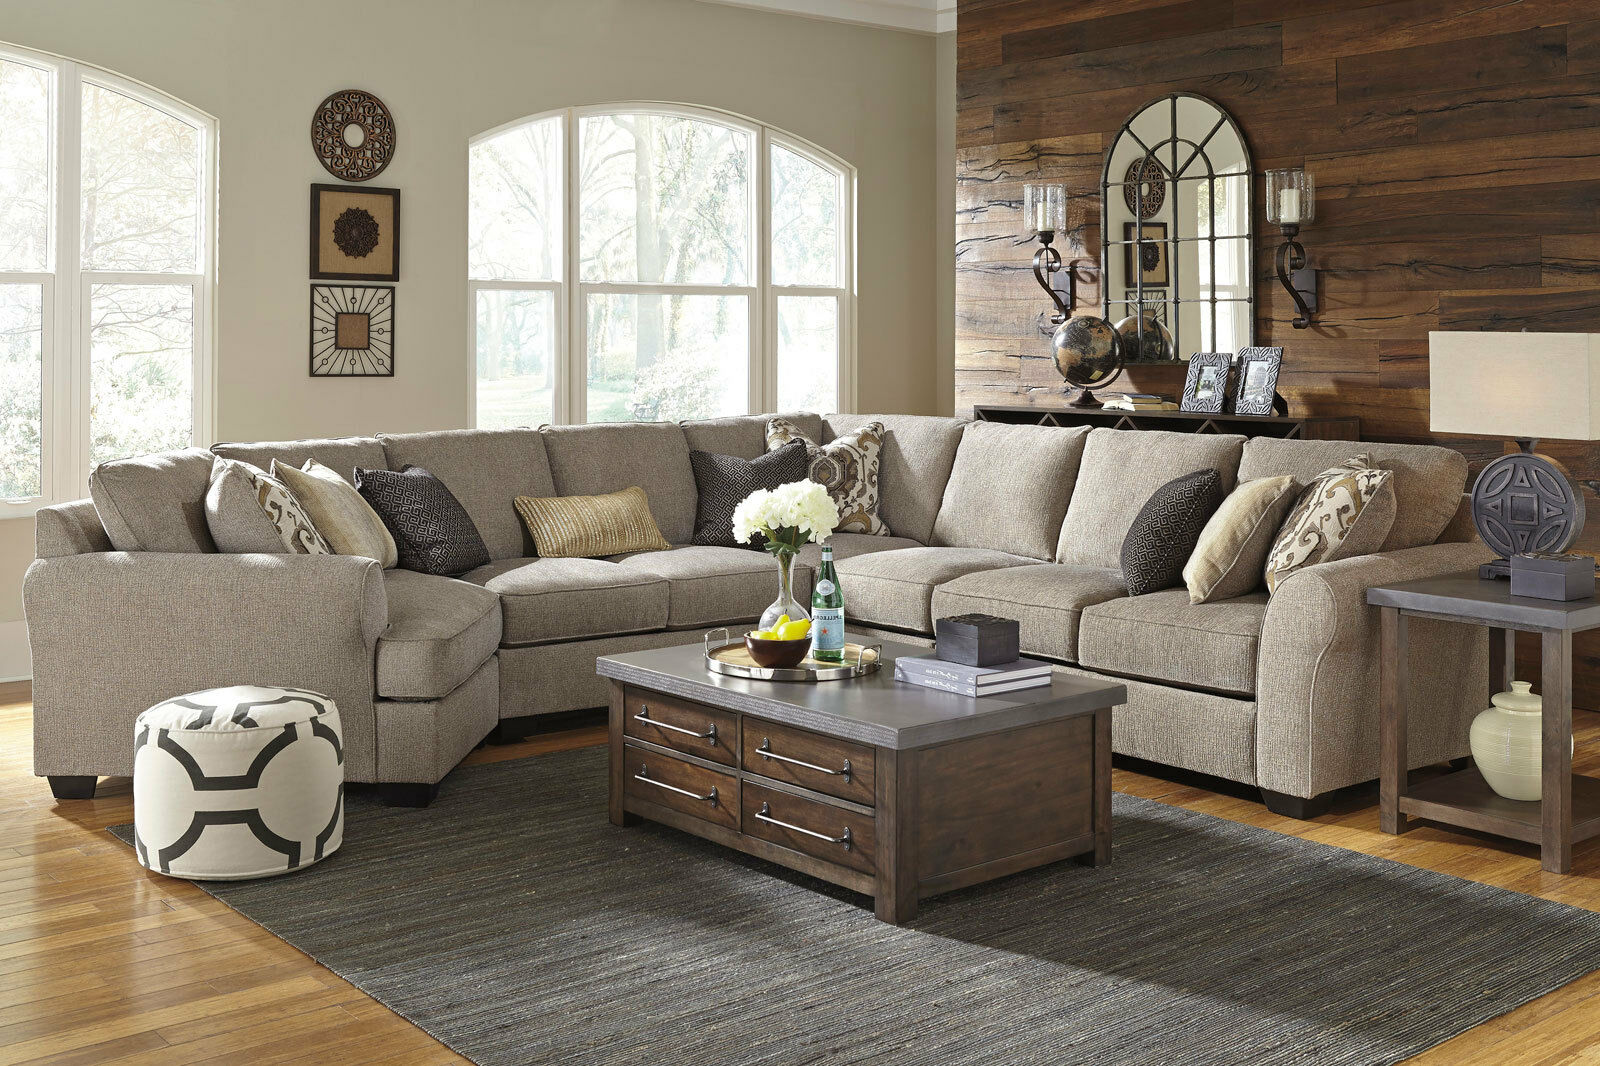 NEW 5pc Modern Living Room Couch Set - Gray Microfiber Large Sectional Sofa  IG3B